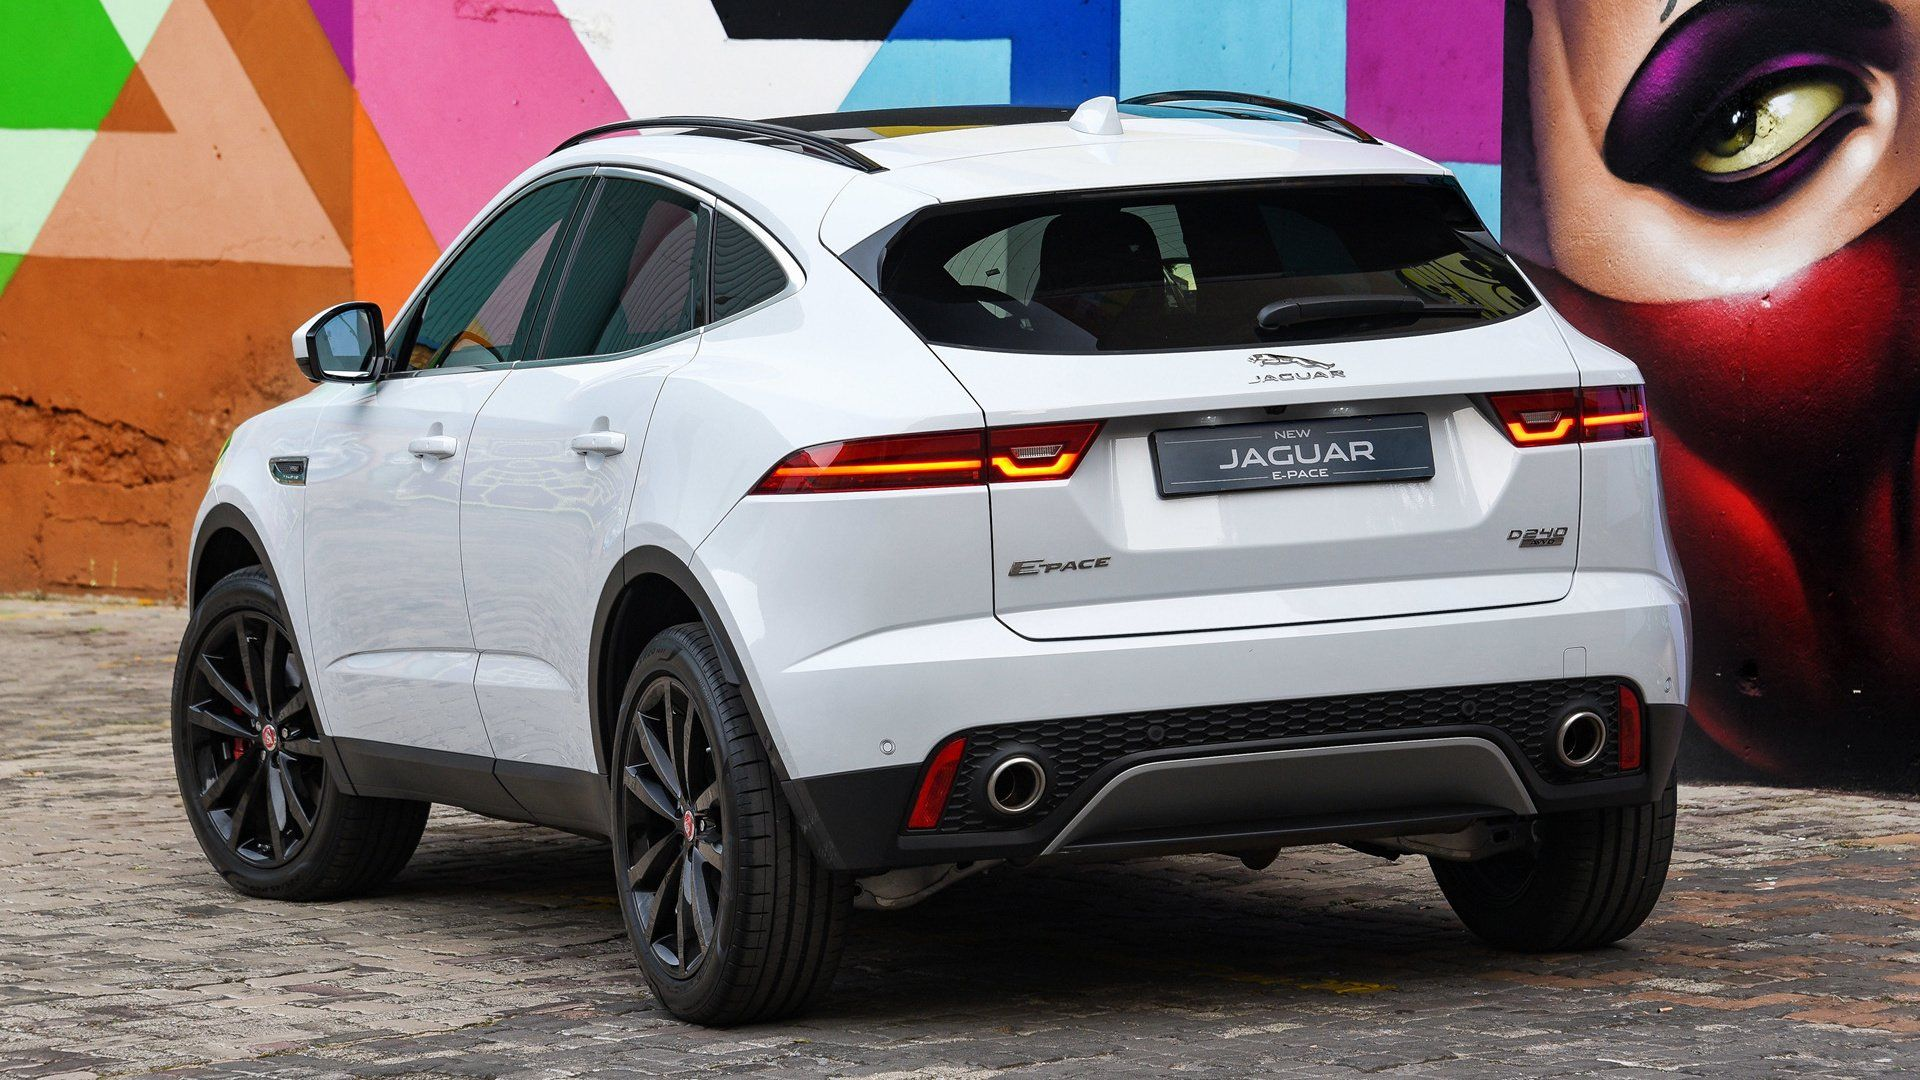 Vehicles Jaguar E Pace Subcompact Car Crossover Car Suv Luxury